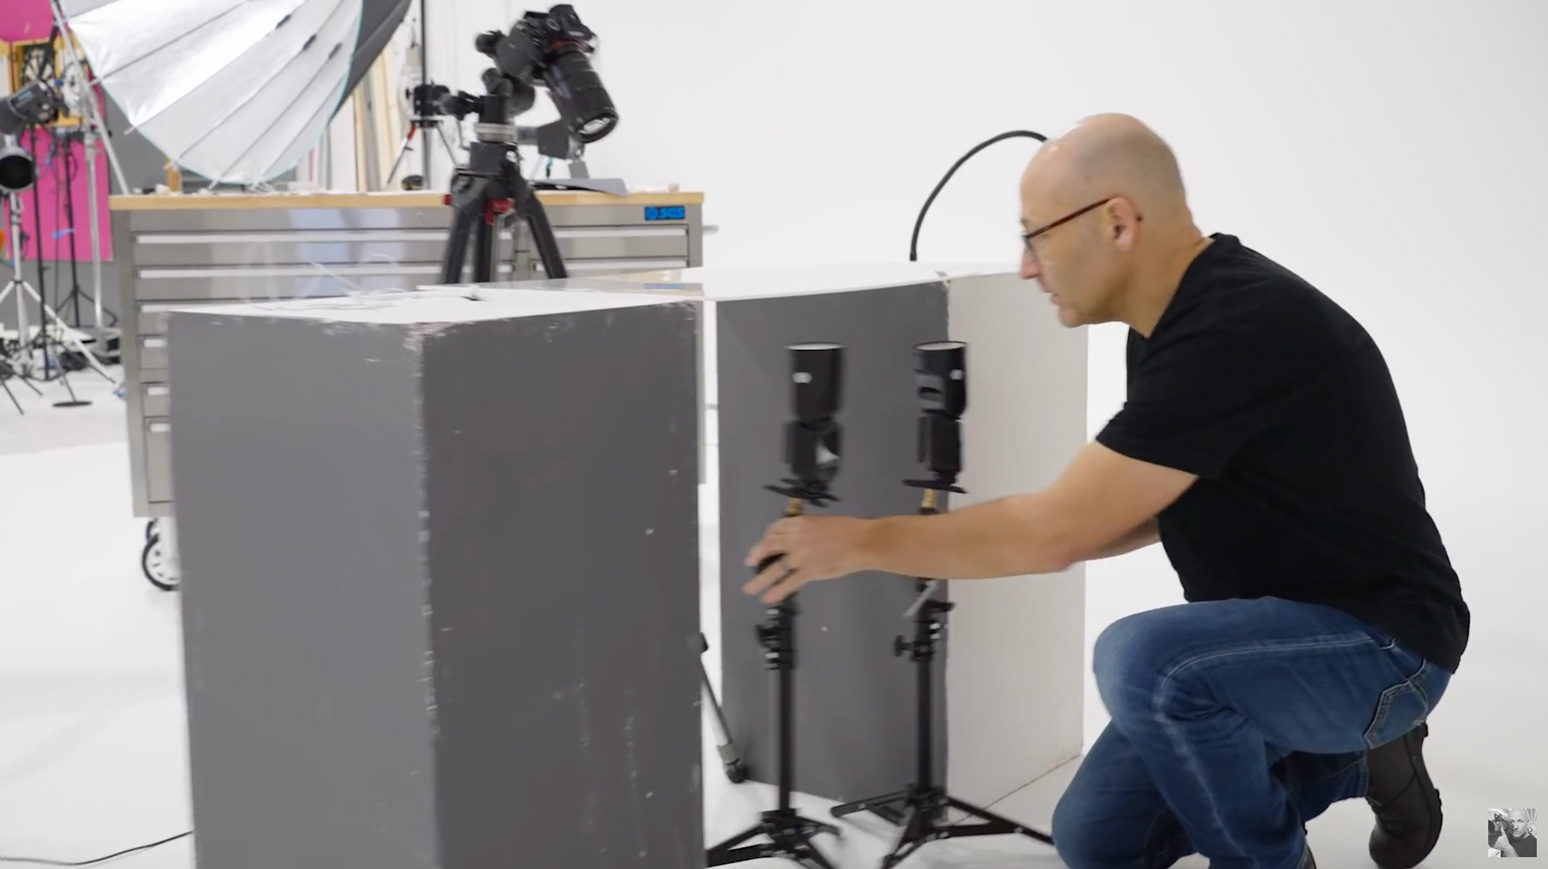 Getting the speedlights in position